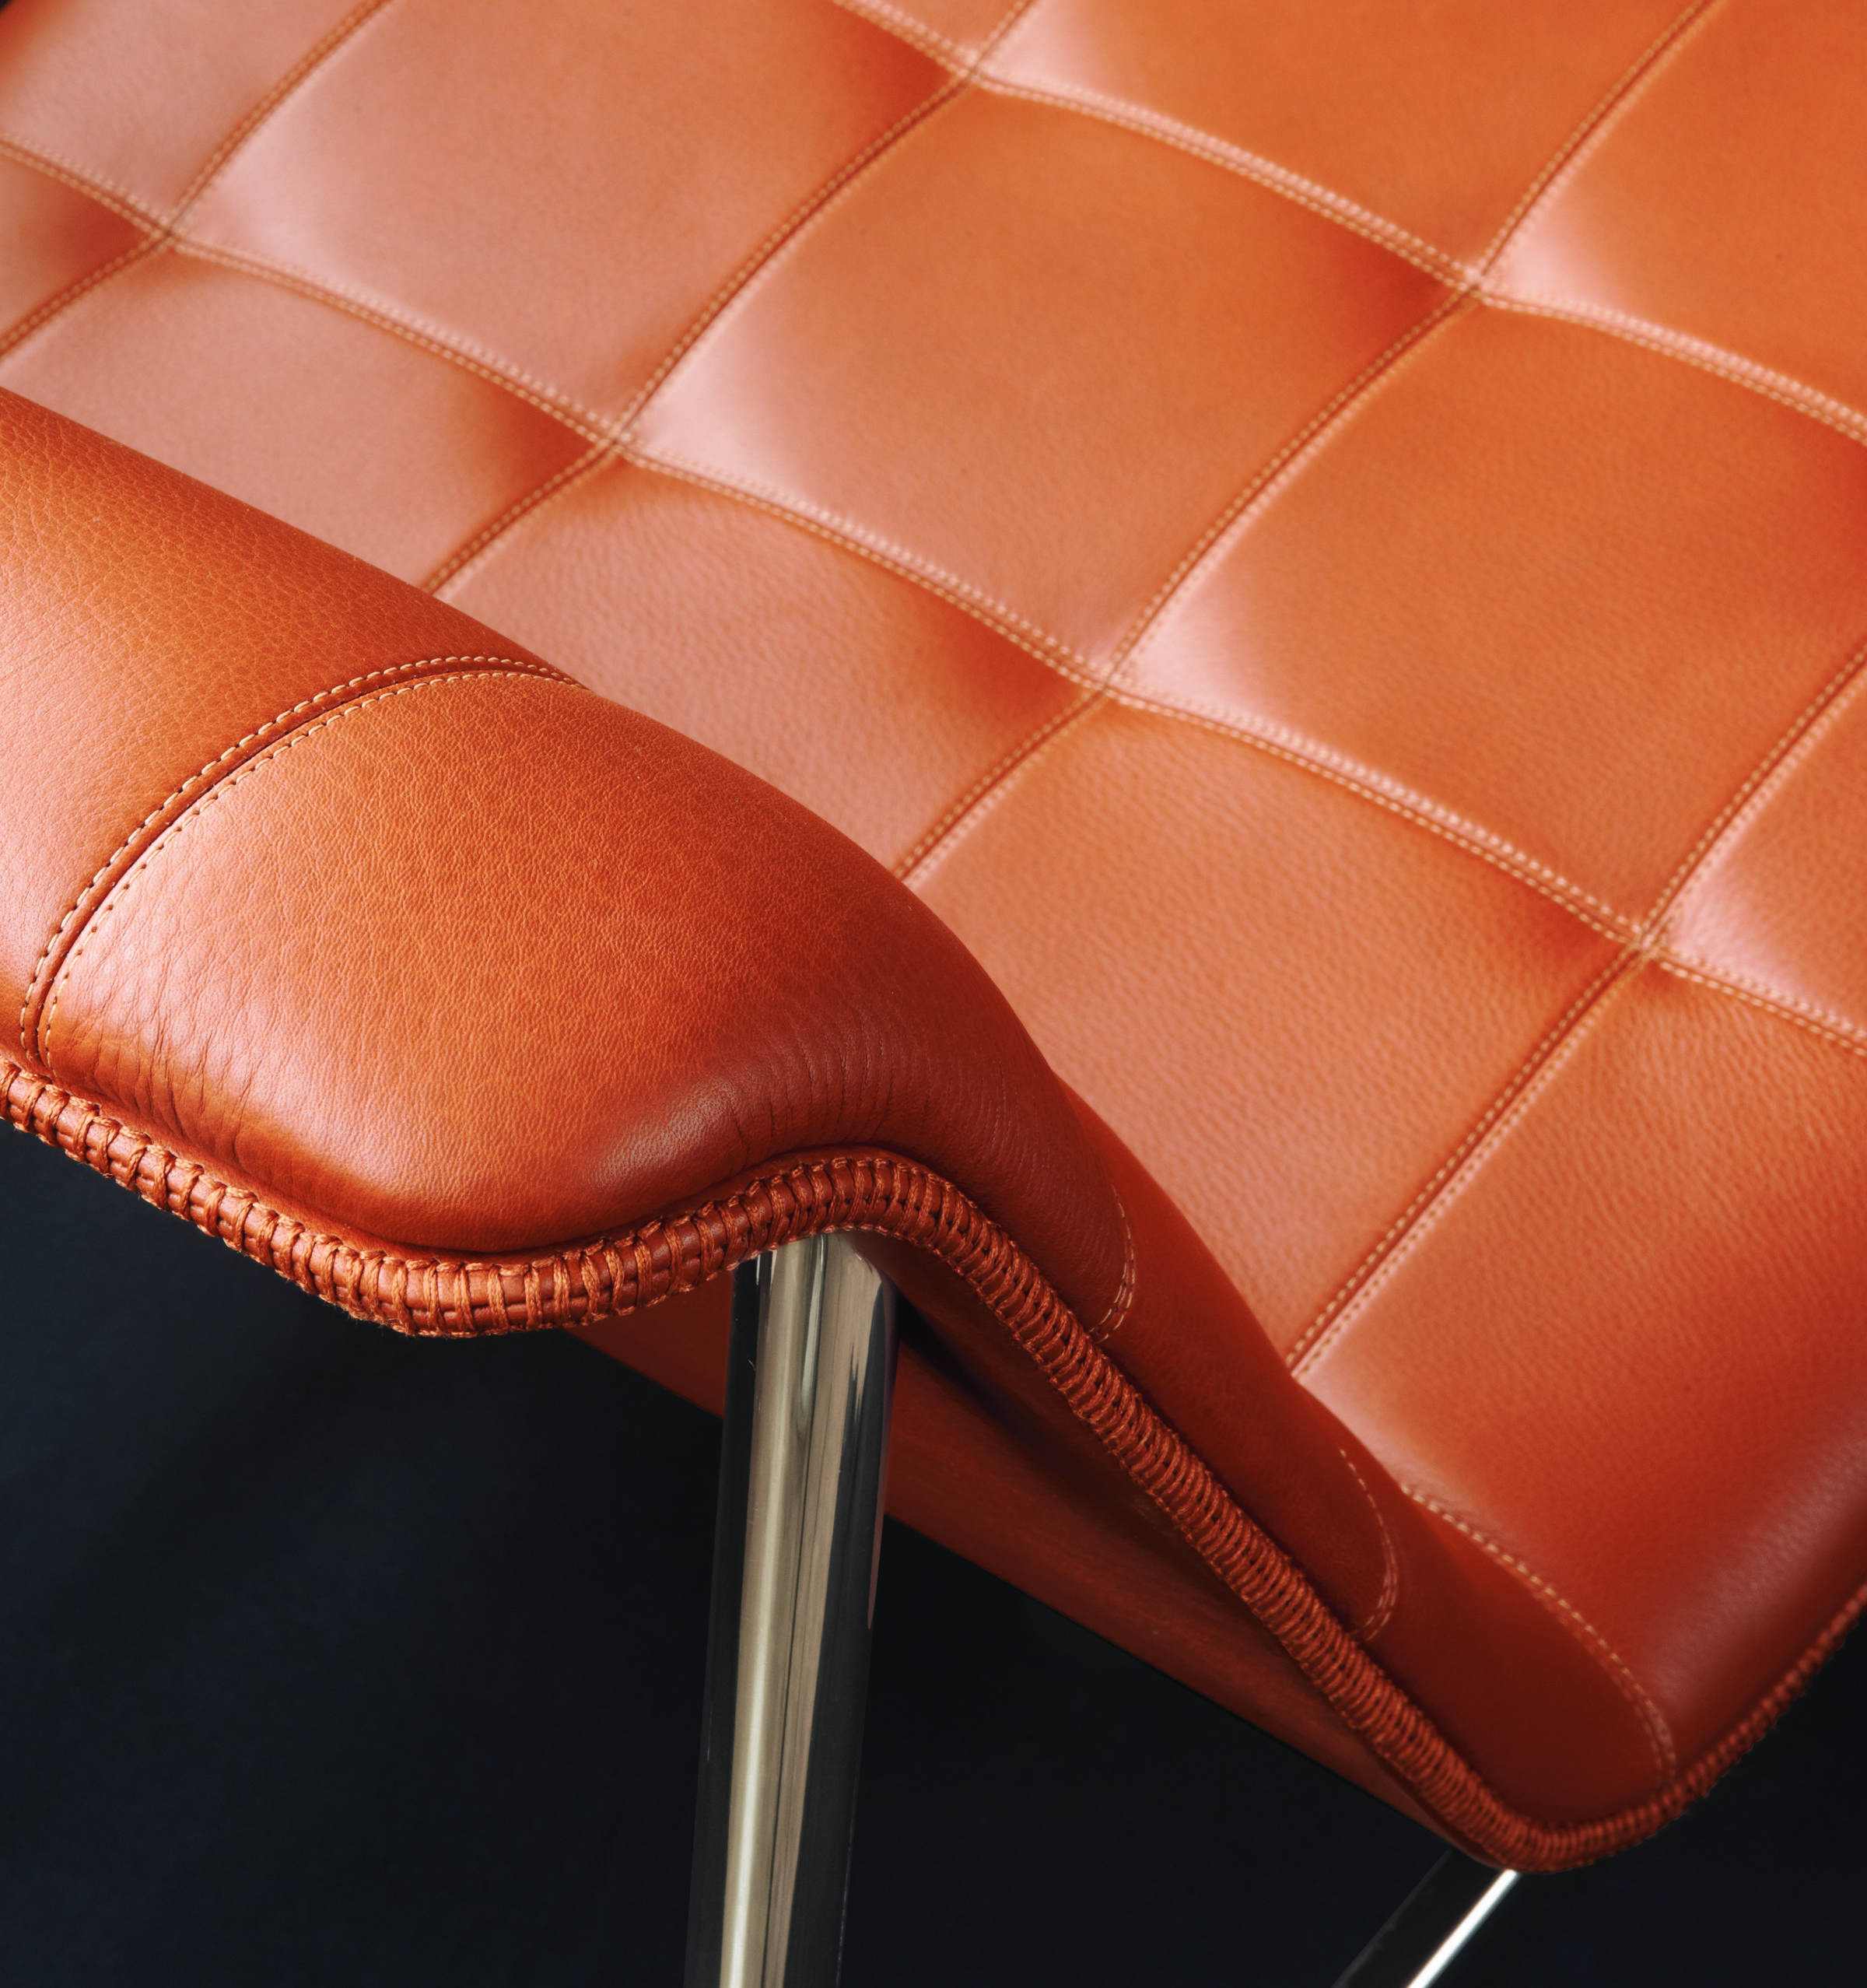 CP.1 lounge chair. New Charles Pollock design for Bernhardt Design. Exquisite detail.